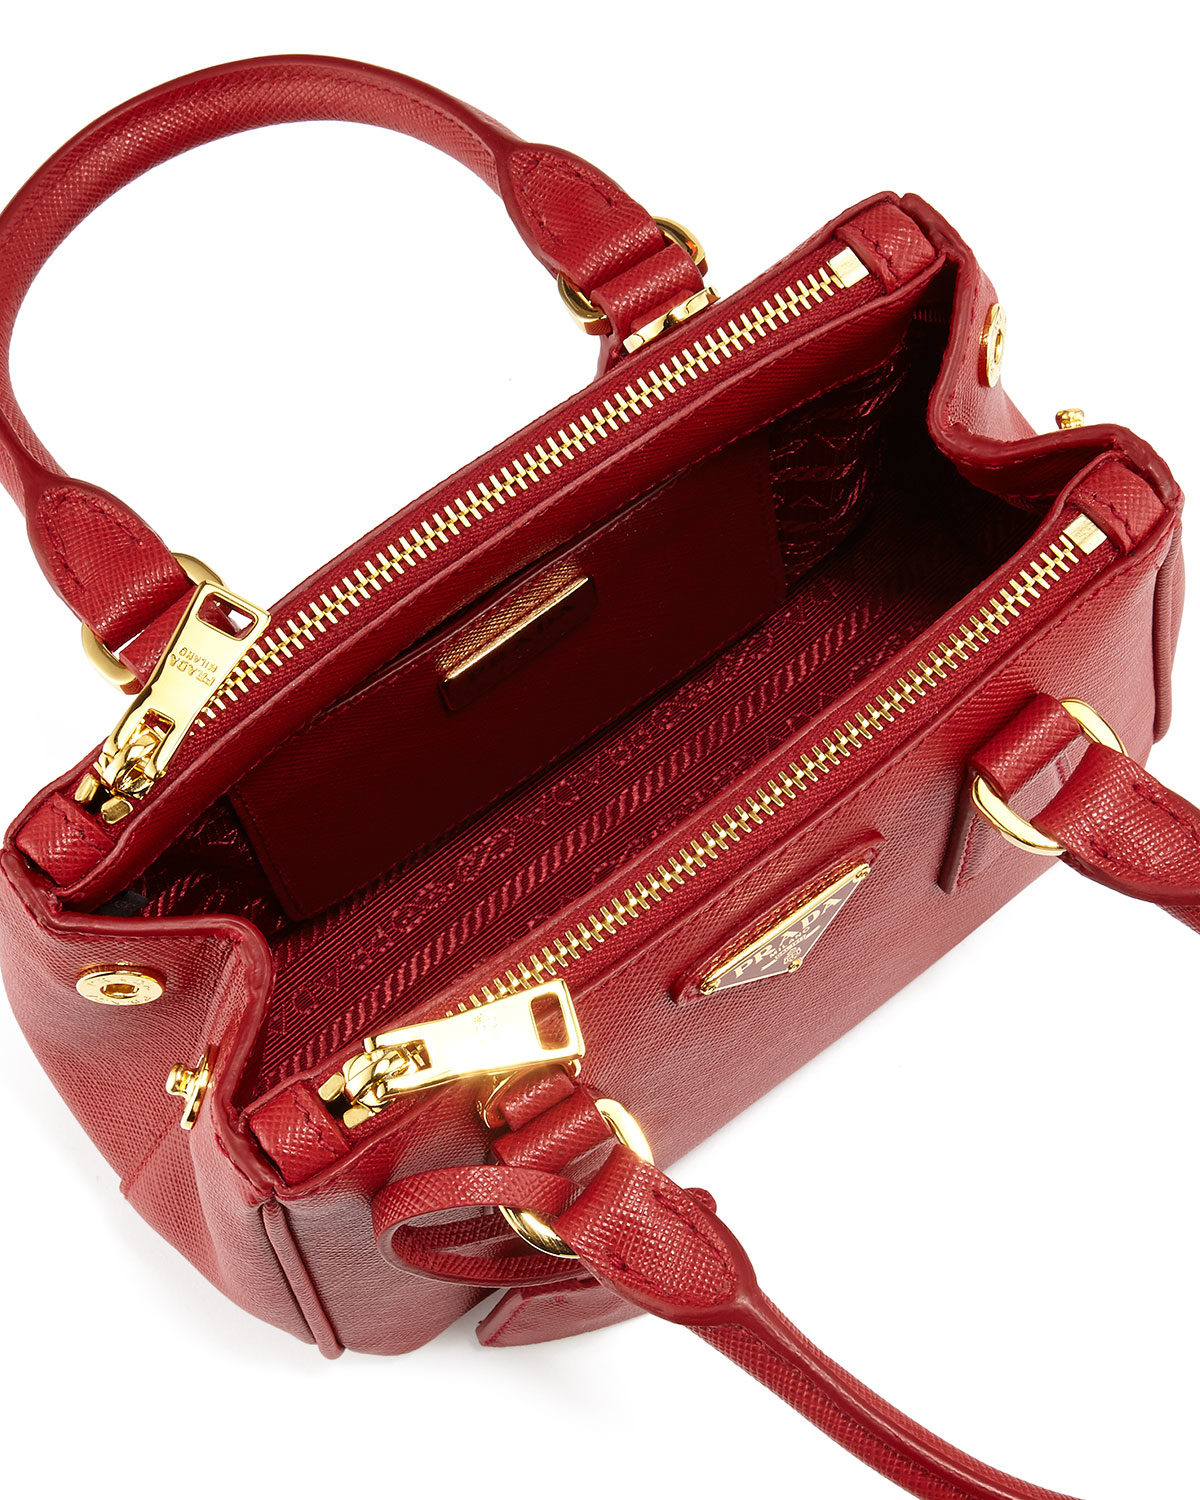 inspired prada handbags - prada red leather handbag, prada purse bag